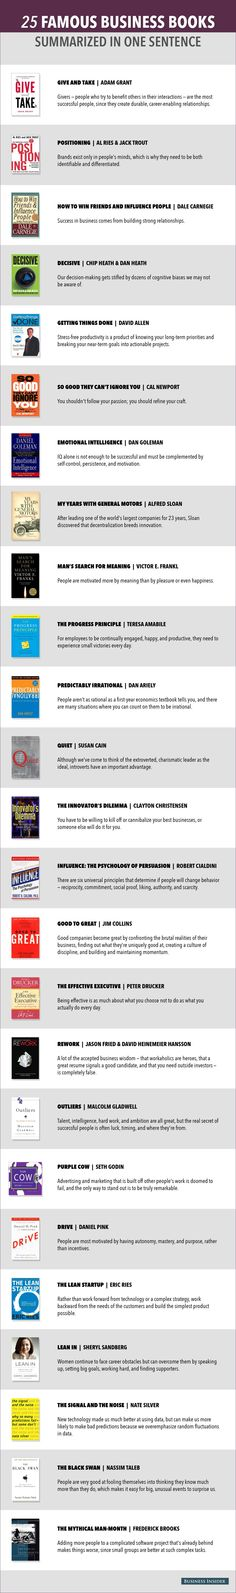 25 Famous #Business #Books Summarized in One Sentence